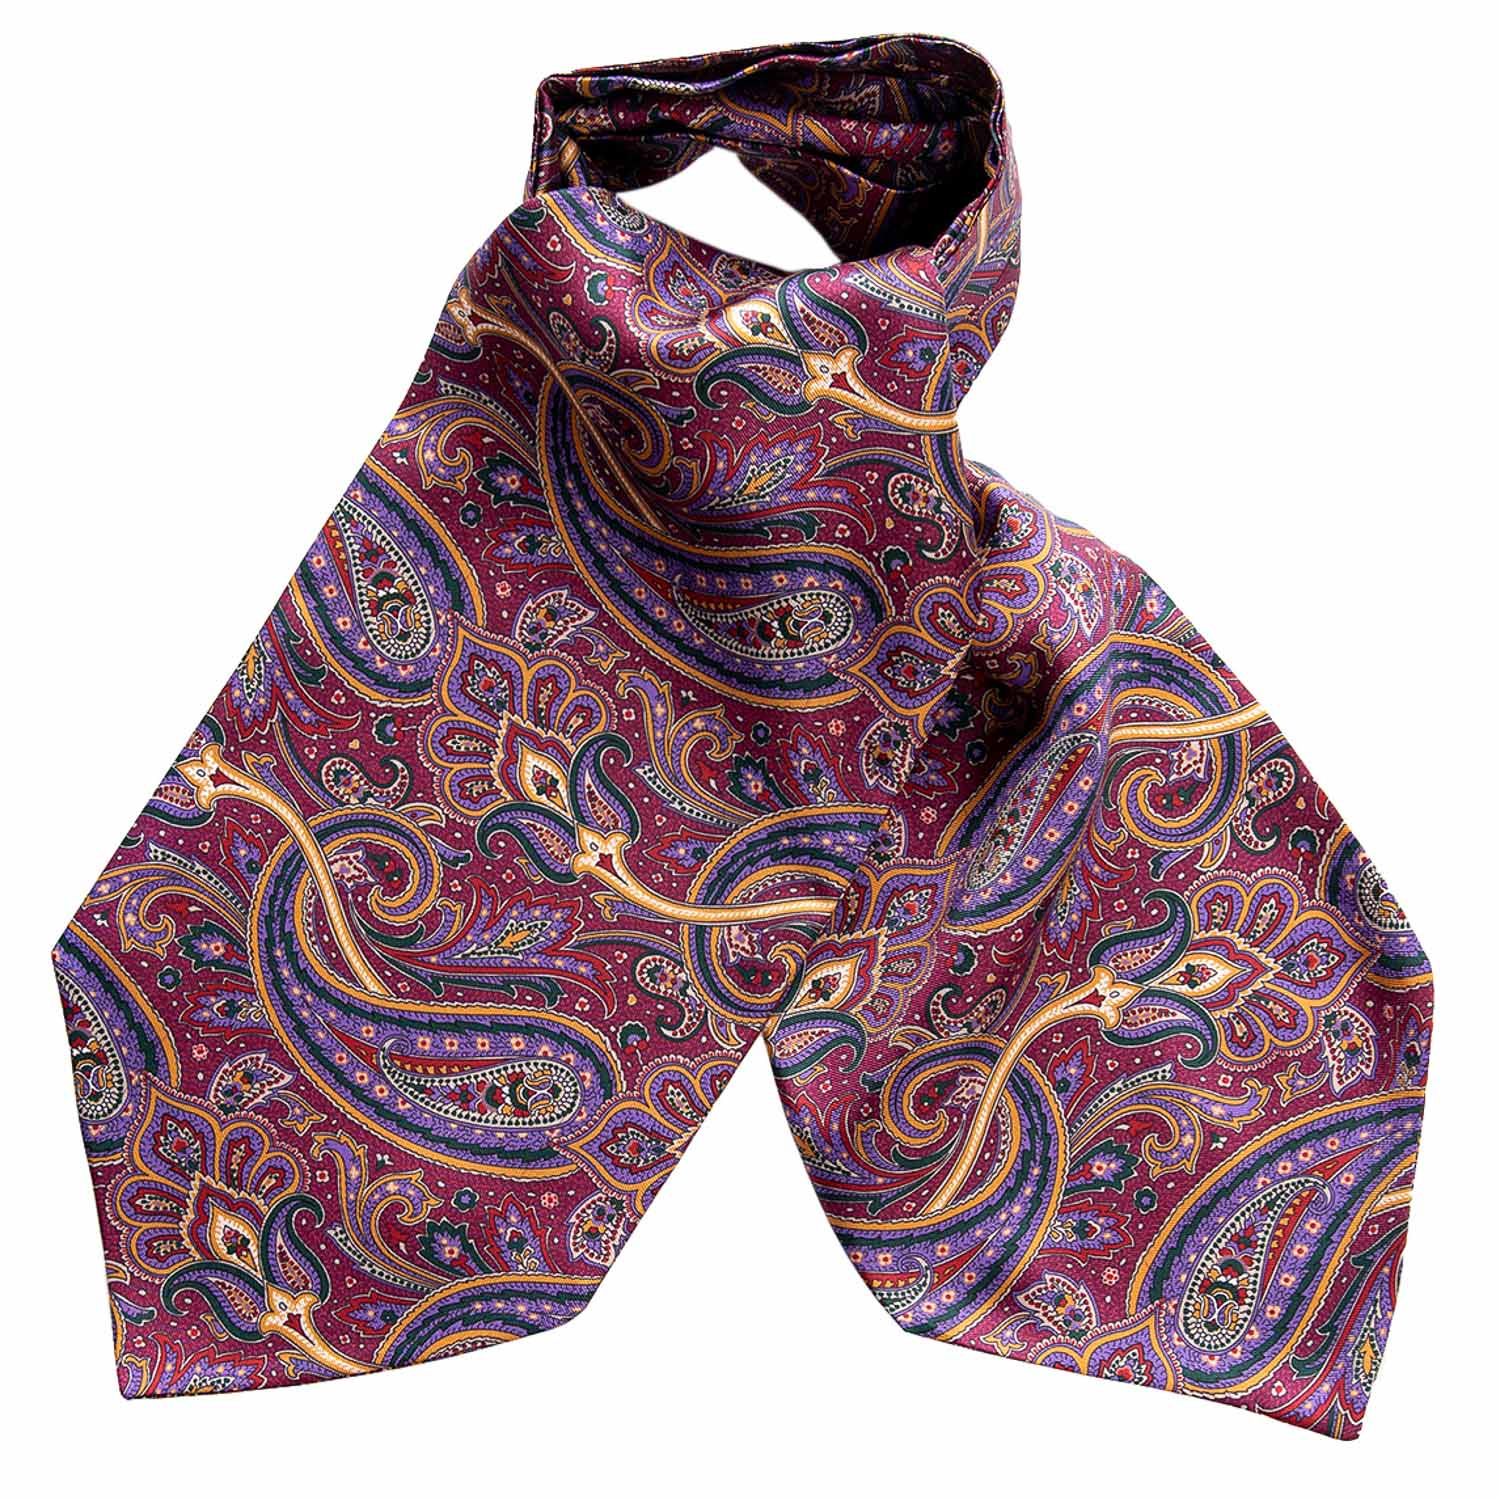 Paisley Ascot Tie - Magenta and Purple Print